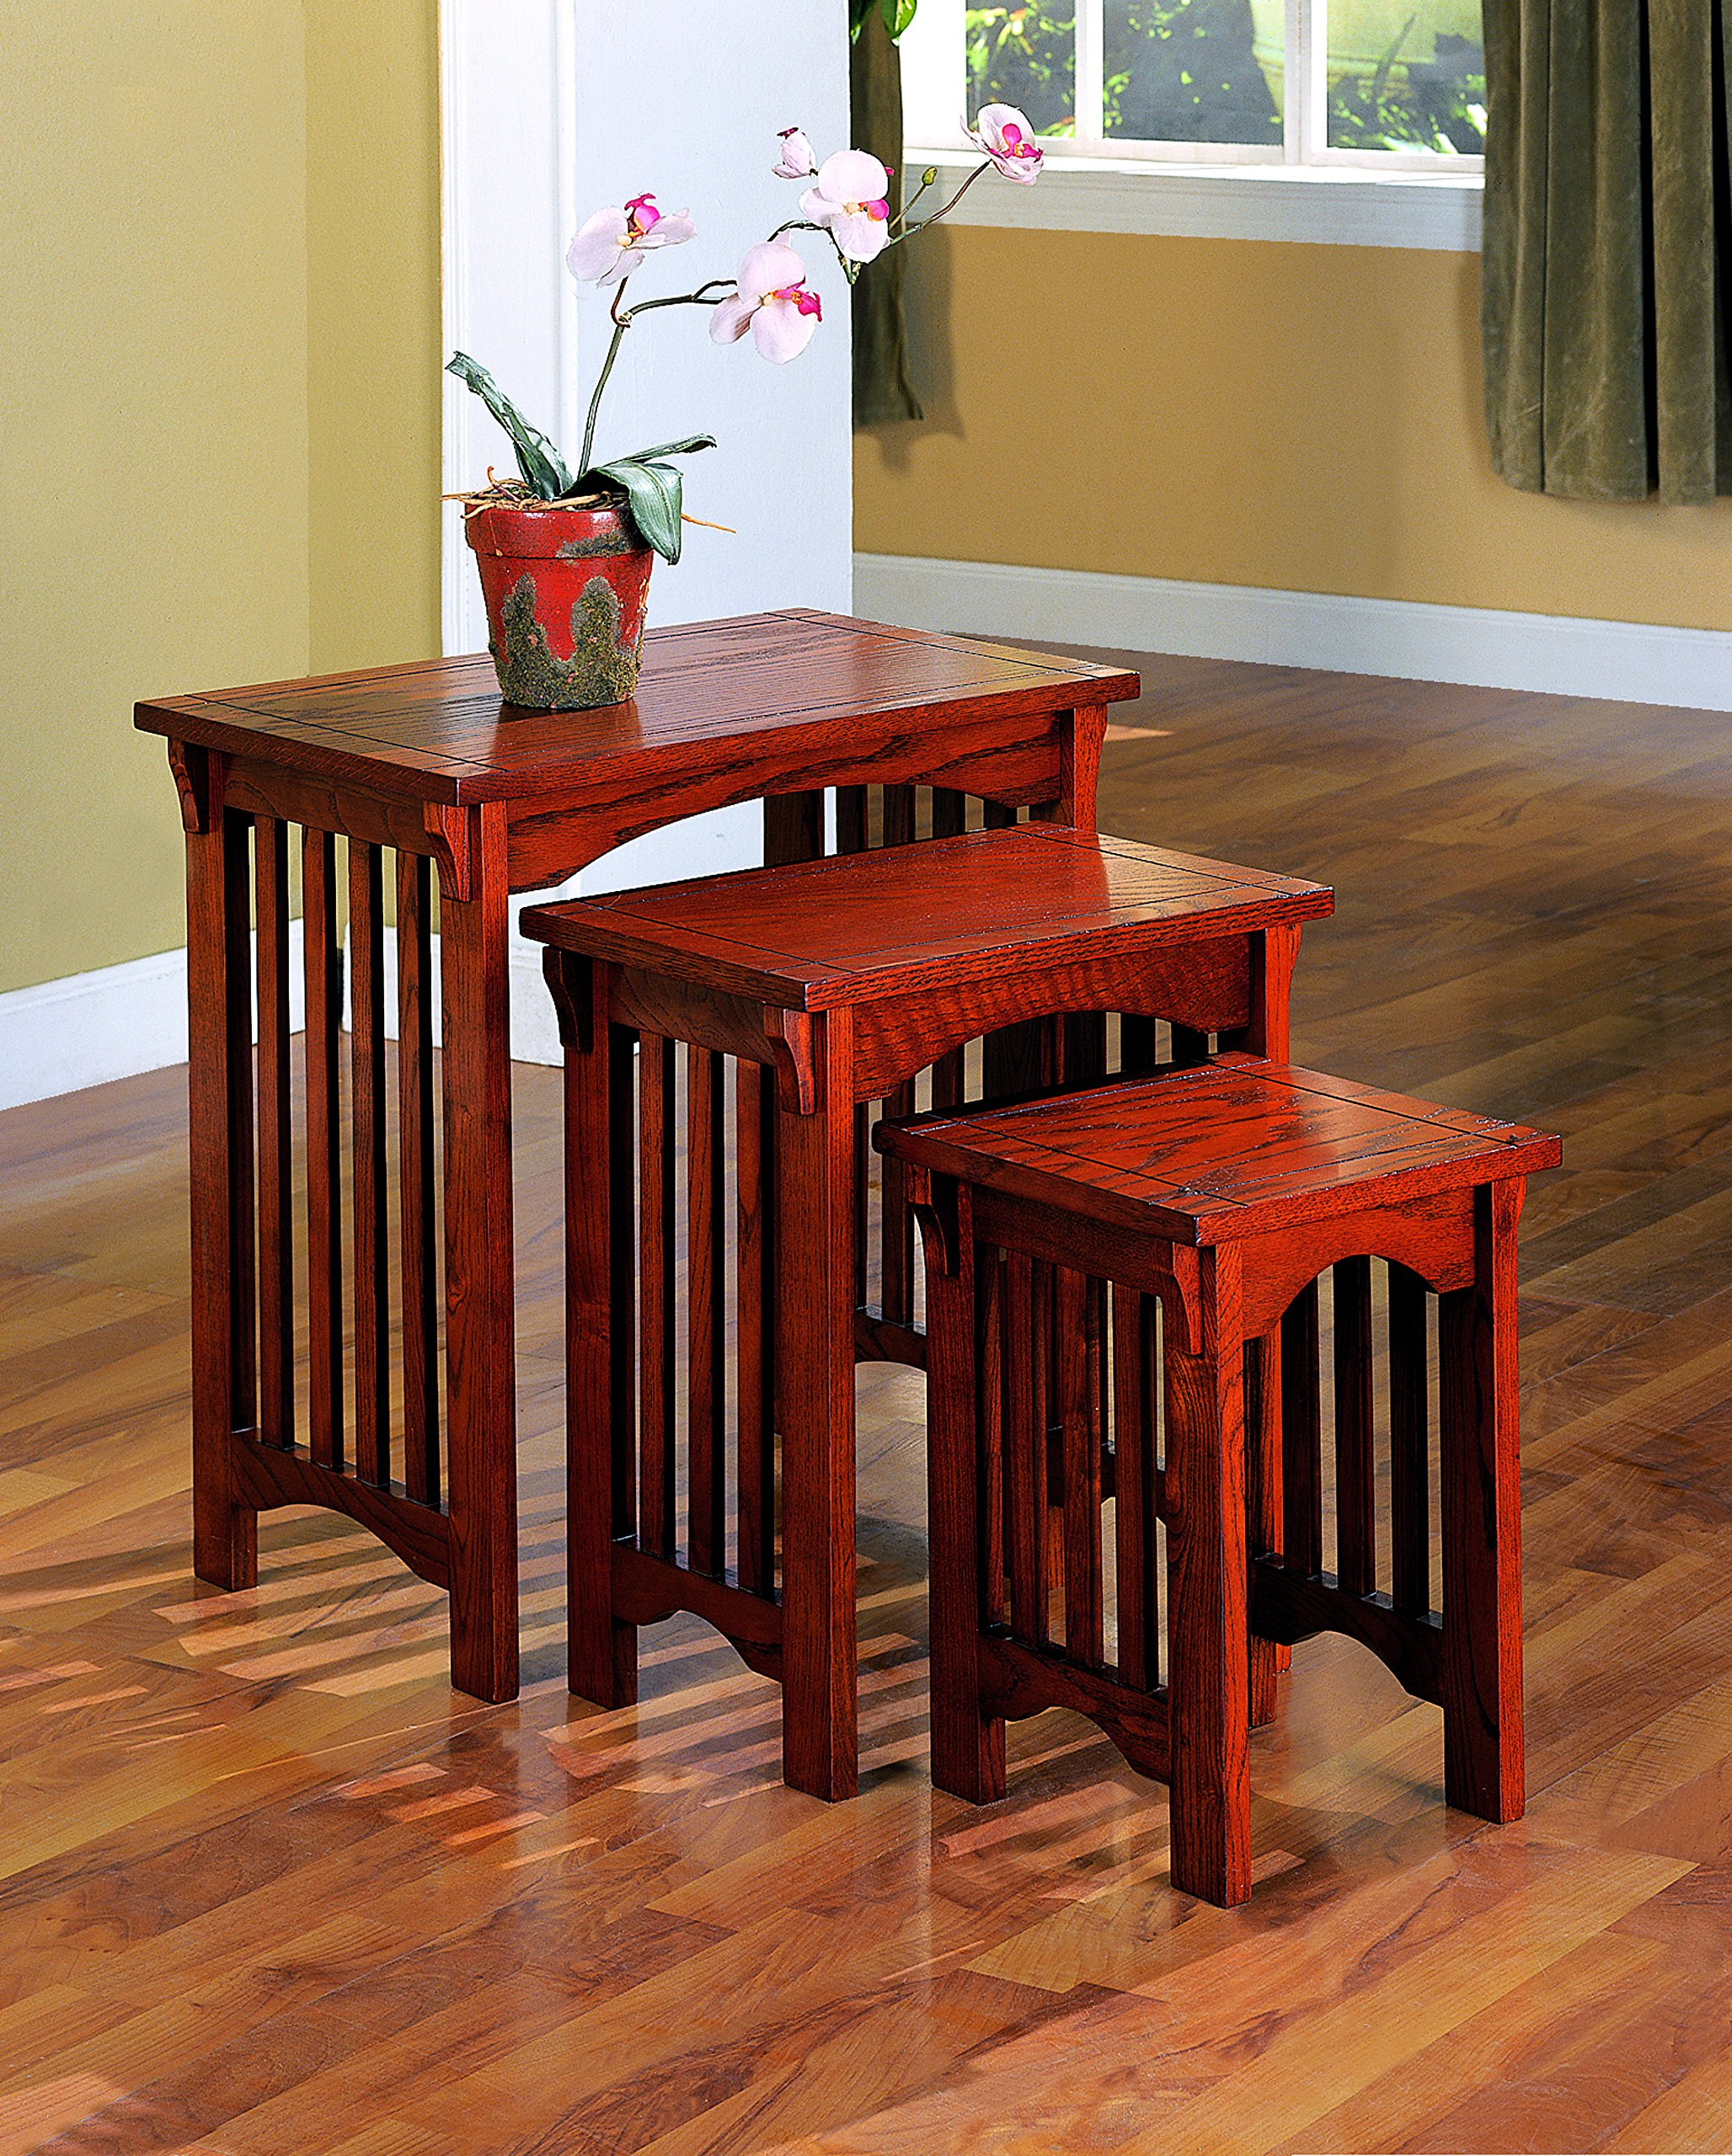 Coaster 901049 3-Piece Mission Style Occasional Nesting Side Table Set, Oak by Coaster Home Furnishings